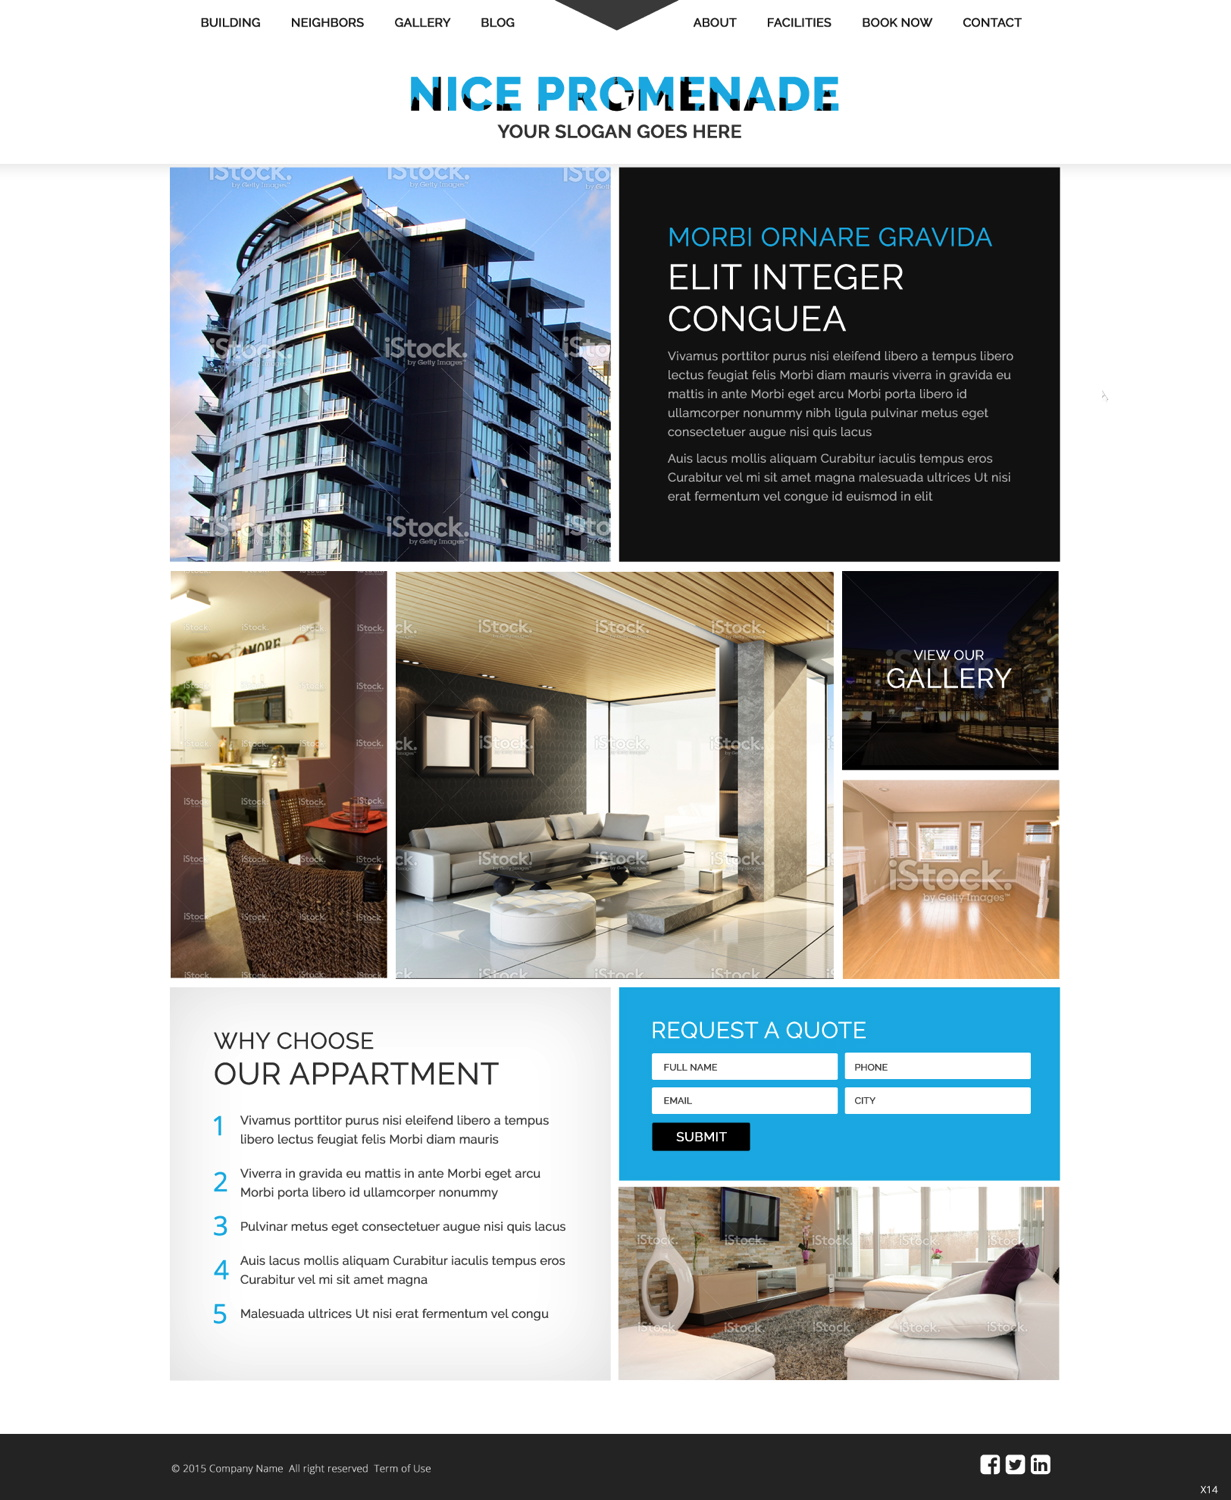 Apt Websites: Apartment Web Design For A Company By Pb